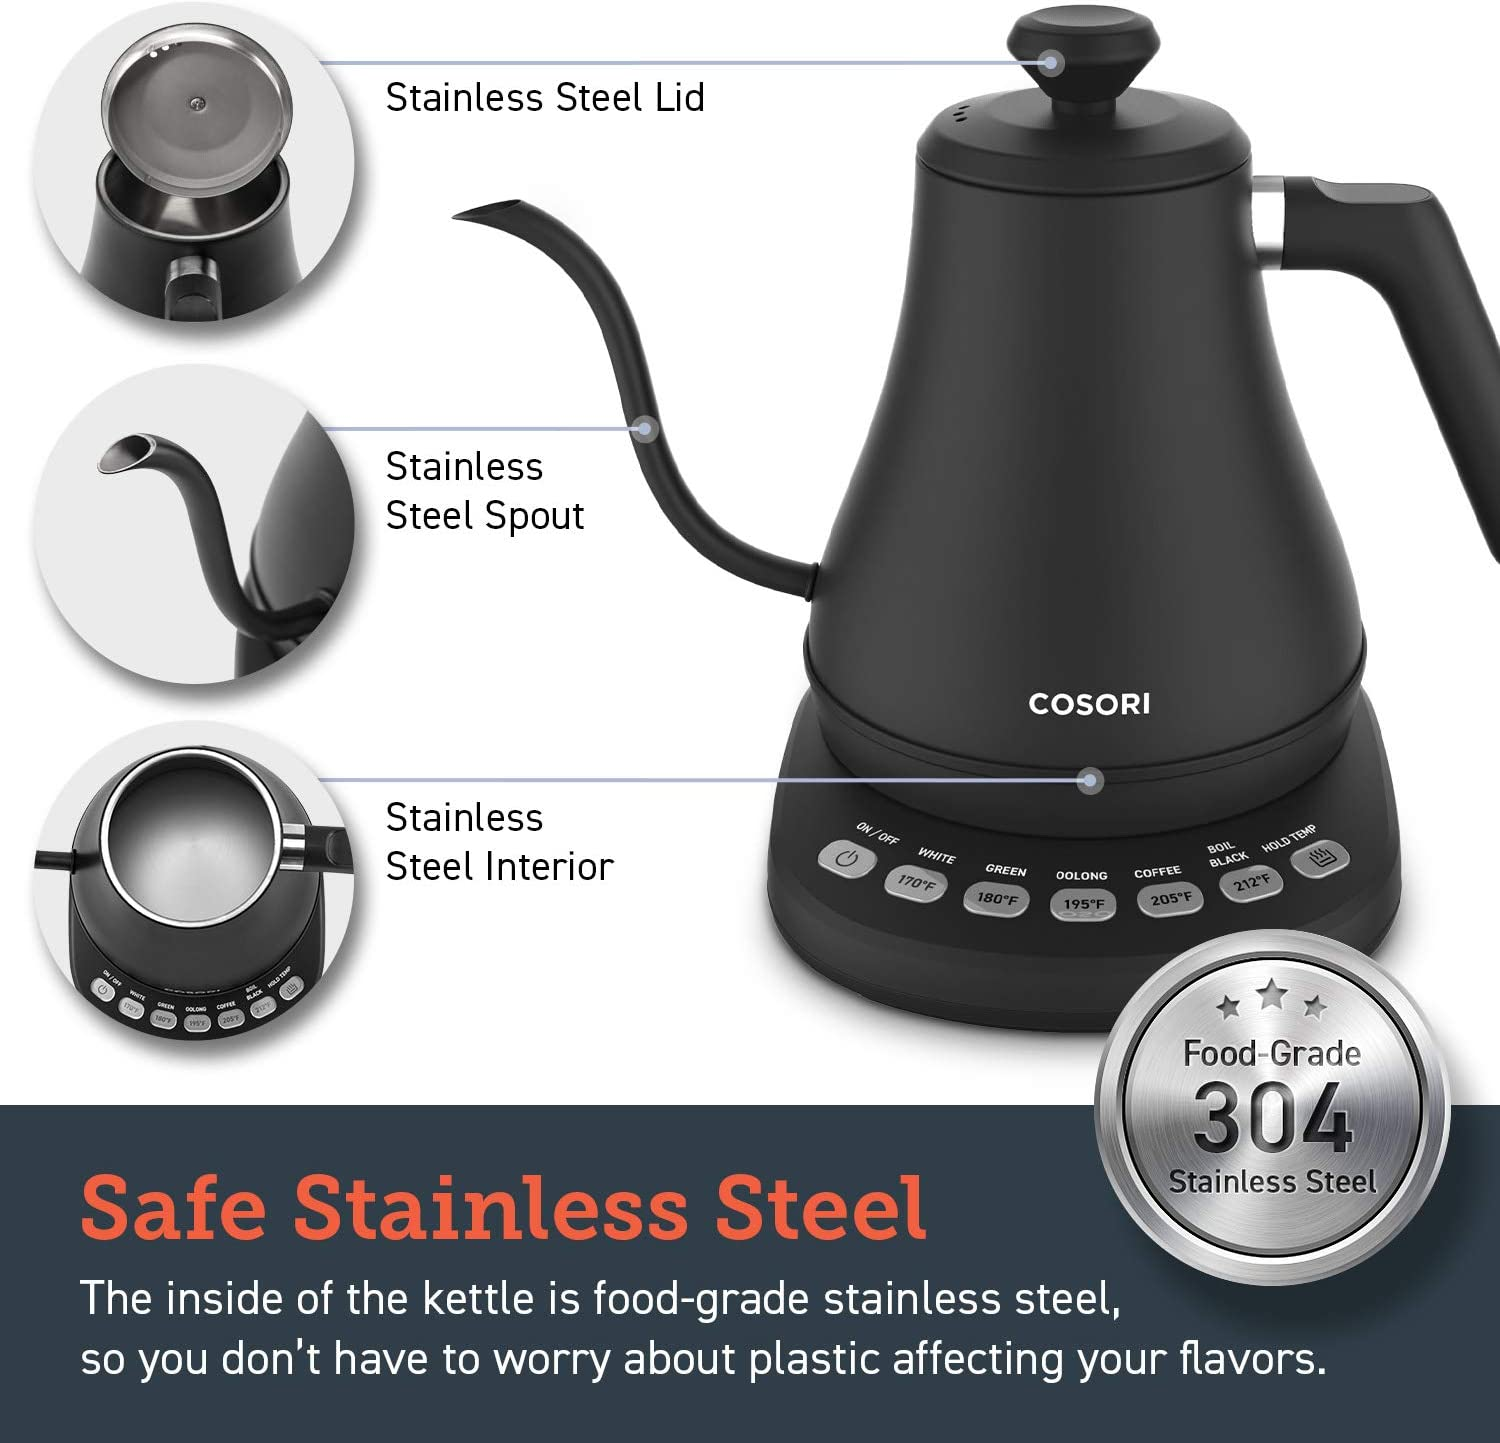 COSORI Electric Gooseneck Kettle with 5 Variable Presets, Pour Over Coffee Kettle & Tea Kettle, 100% Stainless Steel Inner Lid & Bottom, 1200 Watt Quick Heating, 0.8L, Matte Black